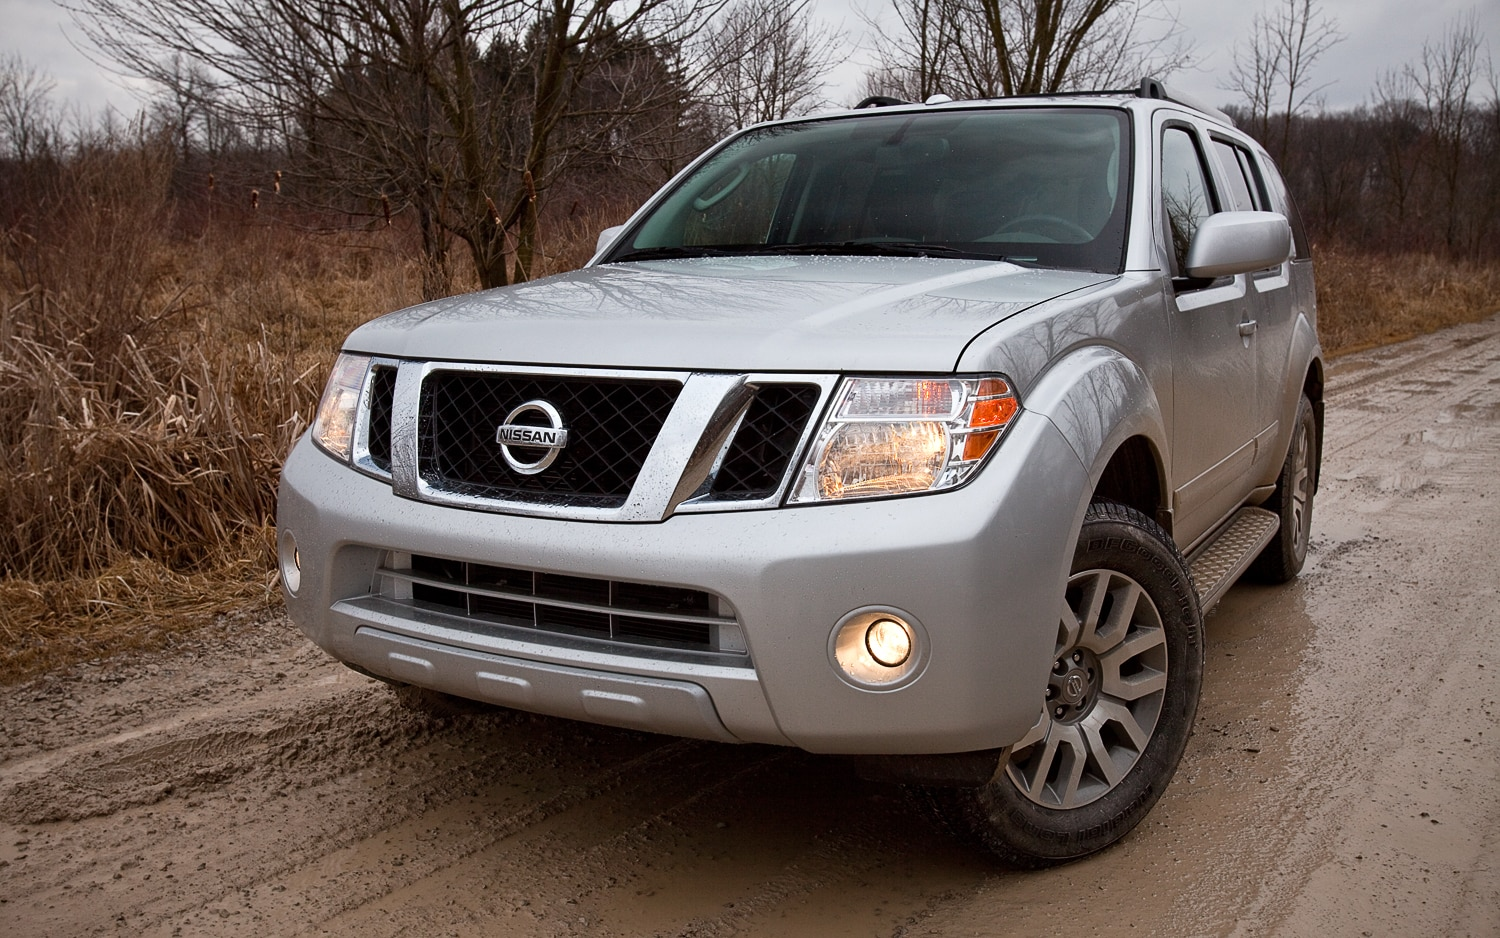 2012 Nissan Pathfinder LE 4x4 Front Left View1